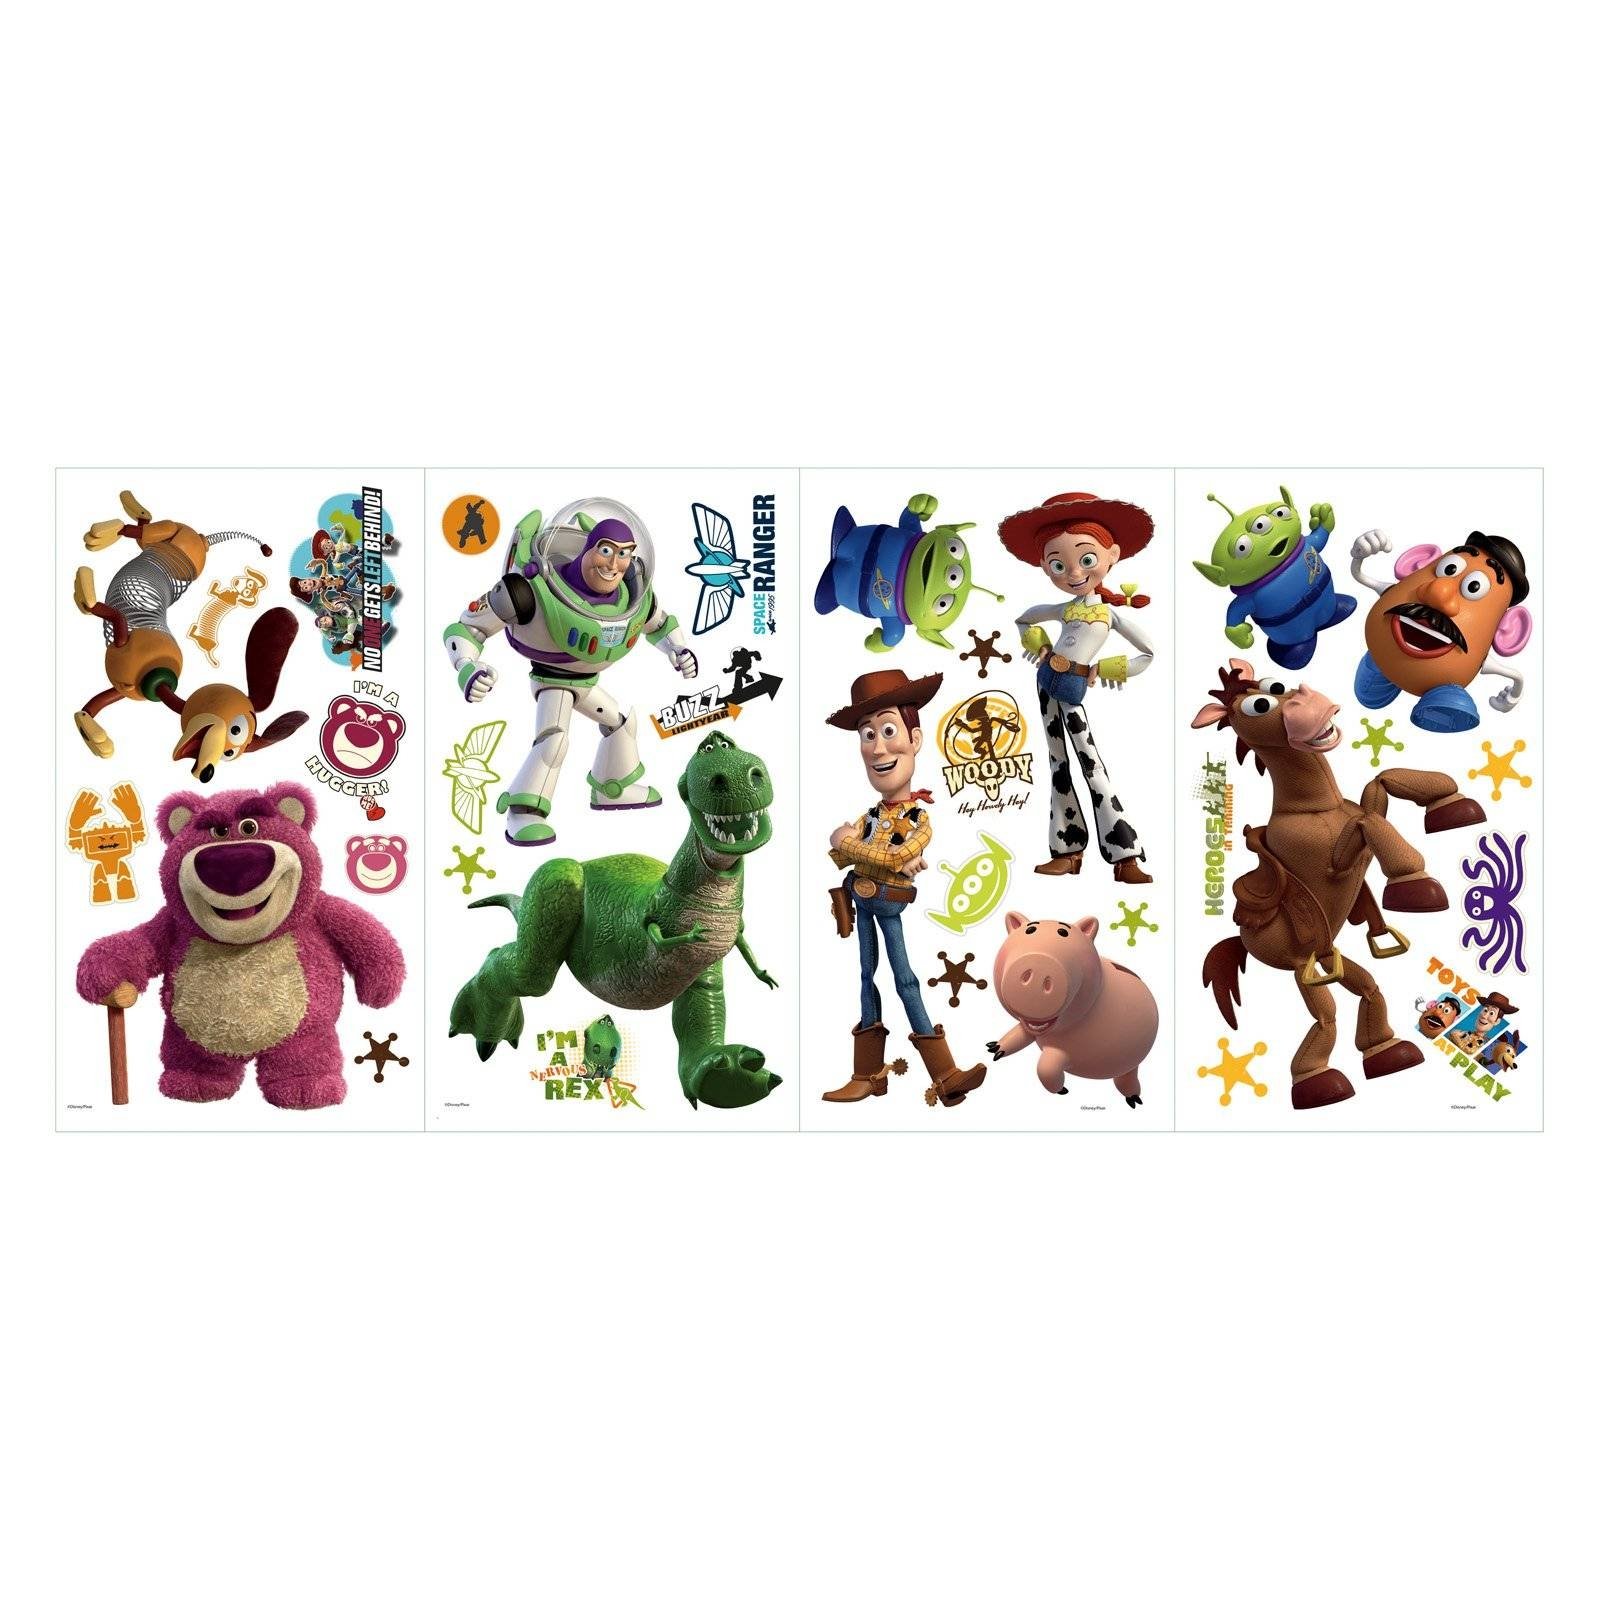 Roommates Disney Pixar Toy Story 3 Peel & Stick Wall Decals – Glow With Regard To Most Up To Date Toy Story Wall Stickers (View 4 of 25)